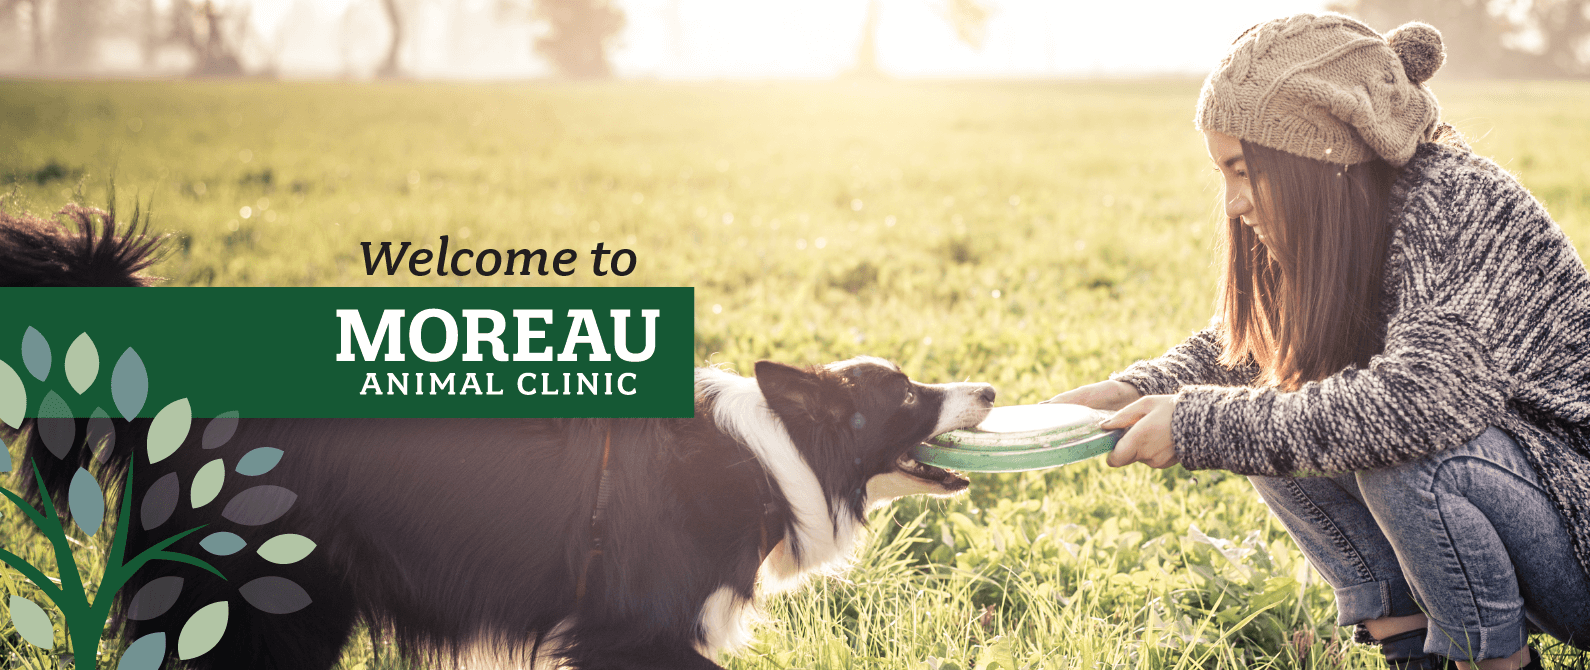 Welcome to Moreau Animal Clinic